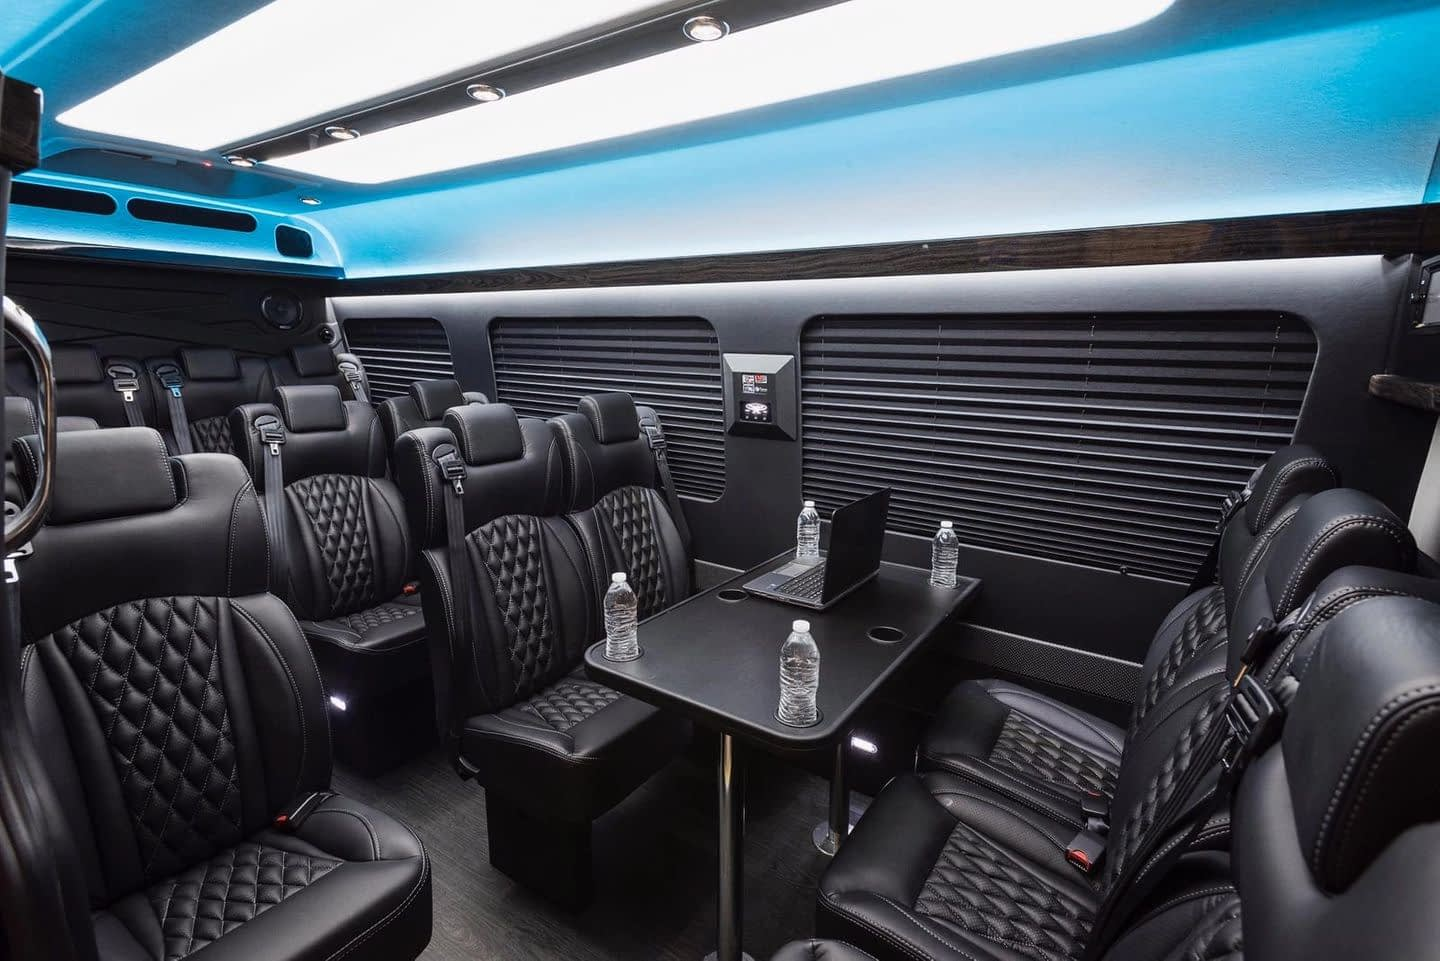 exclusive transport for events - private chauffeured vehicles